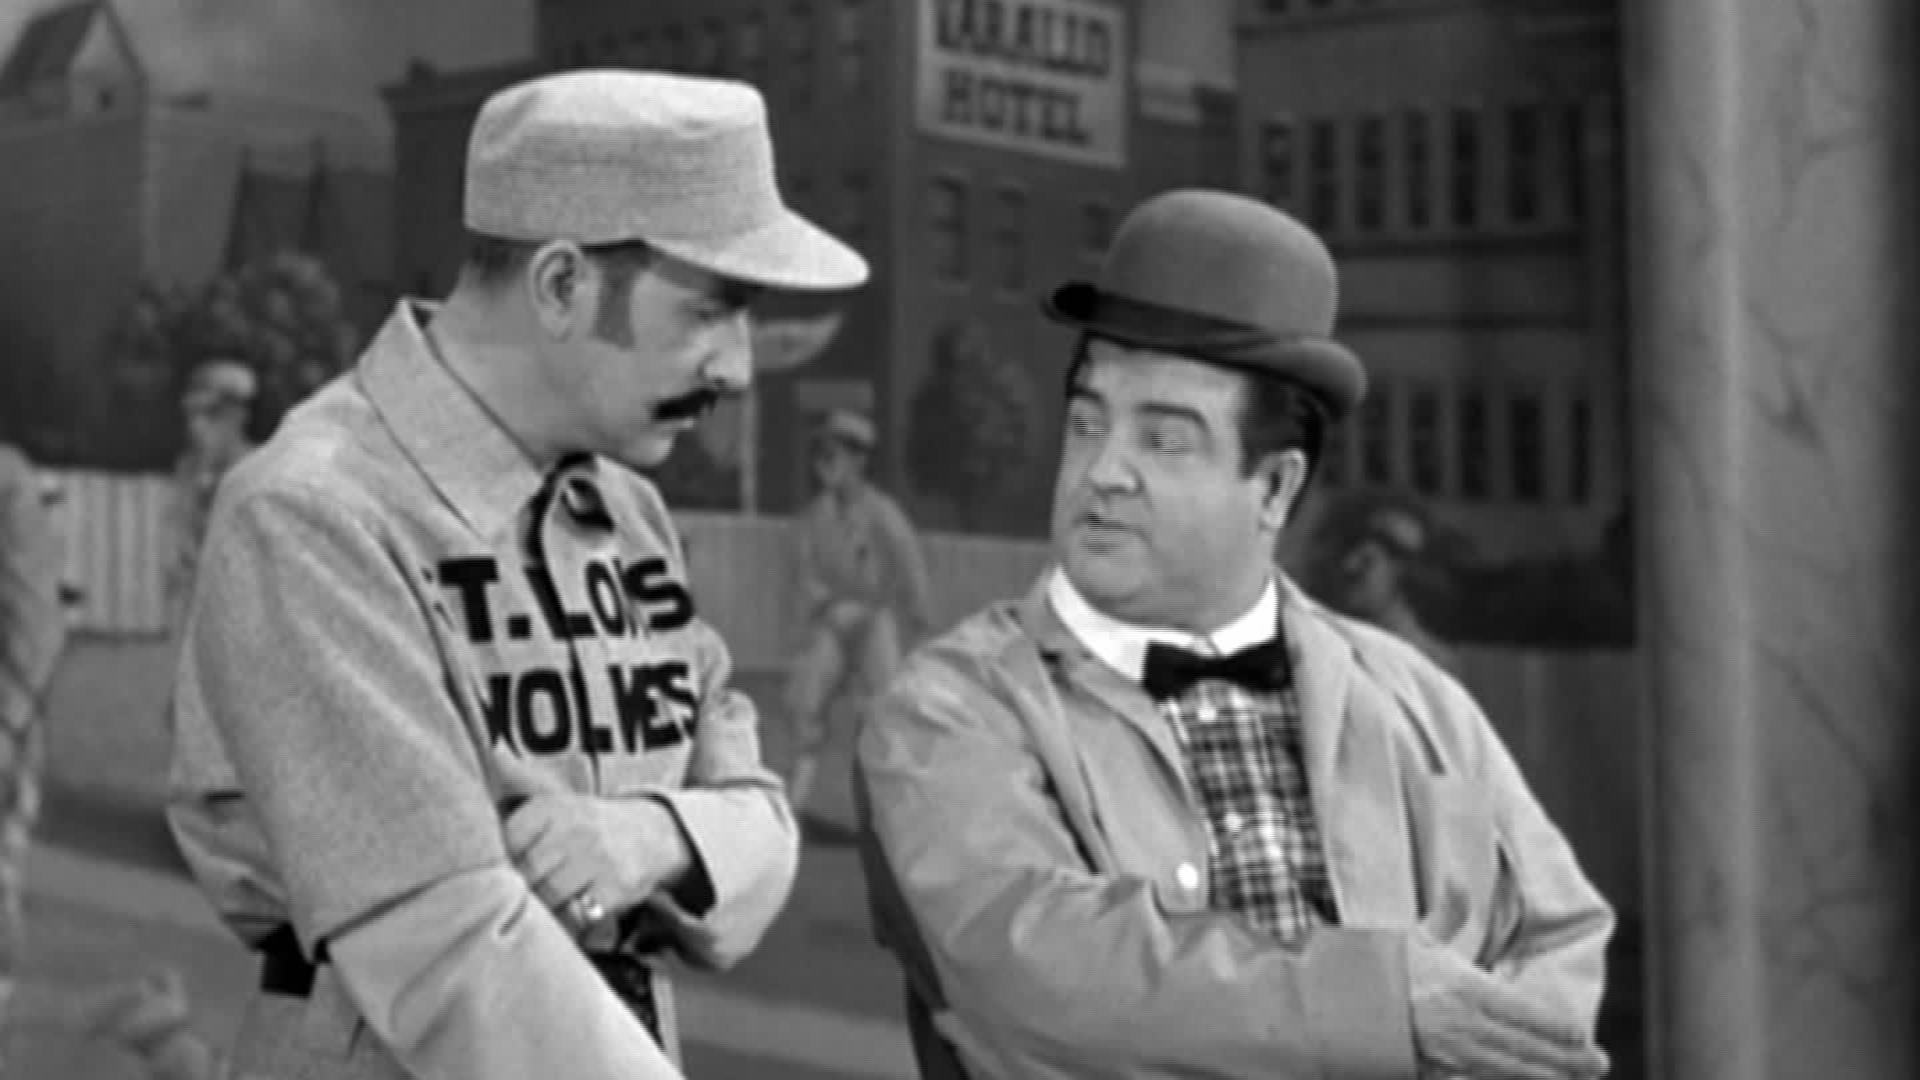 Did Abbott and Costello write the iconic 'Who's on First' routine? - CNN Video